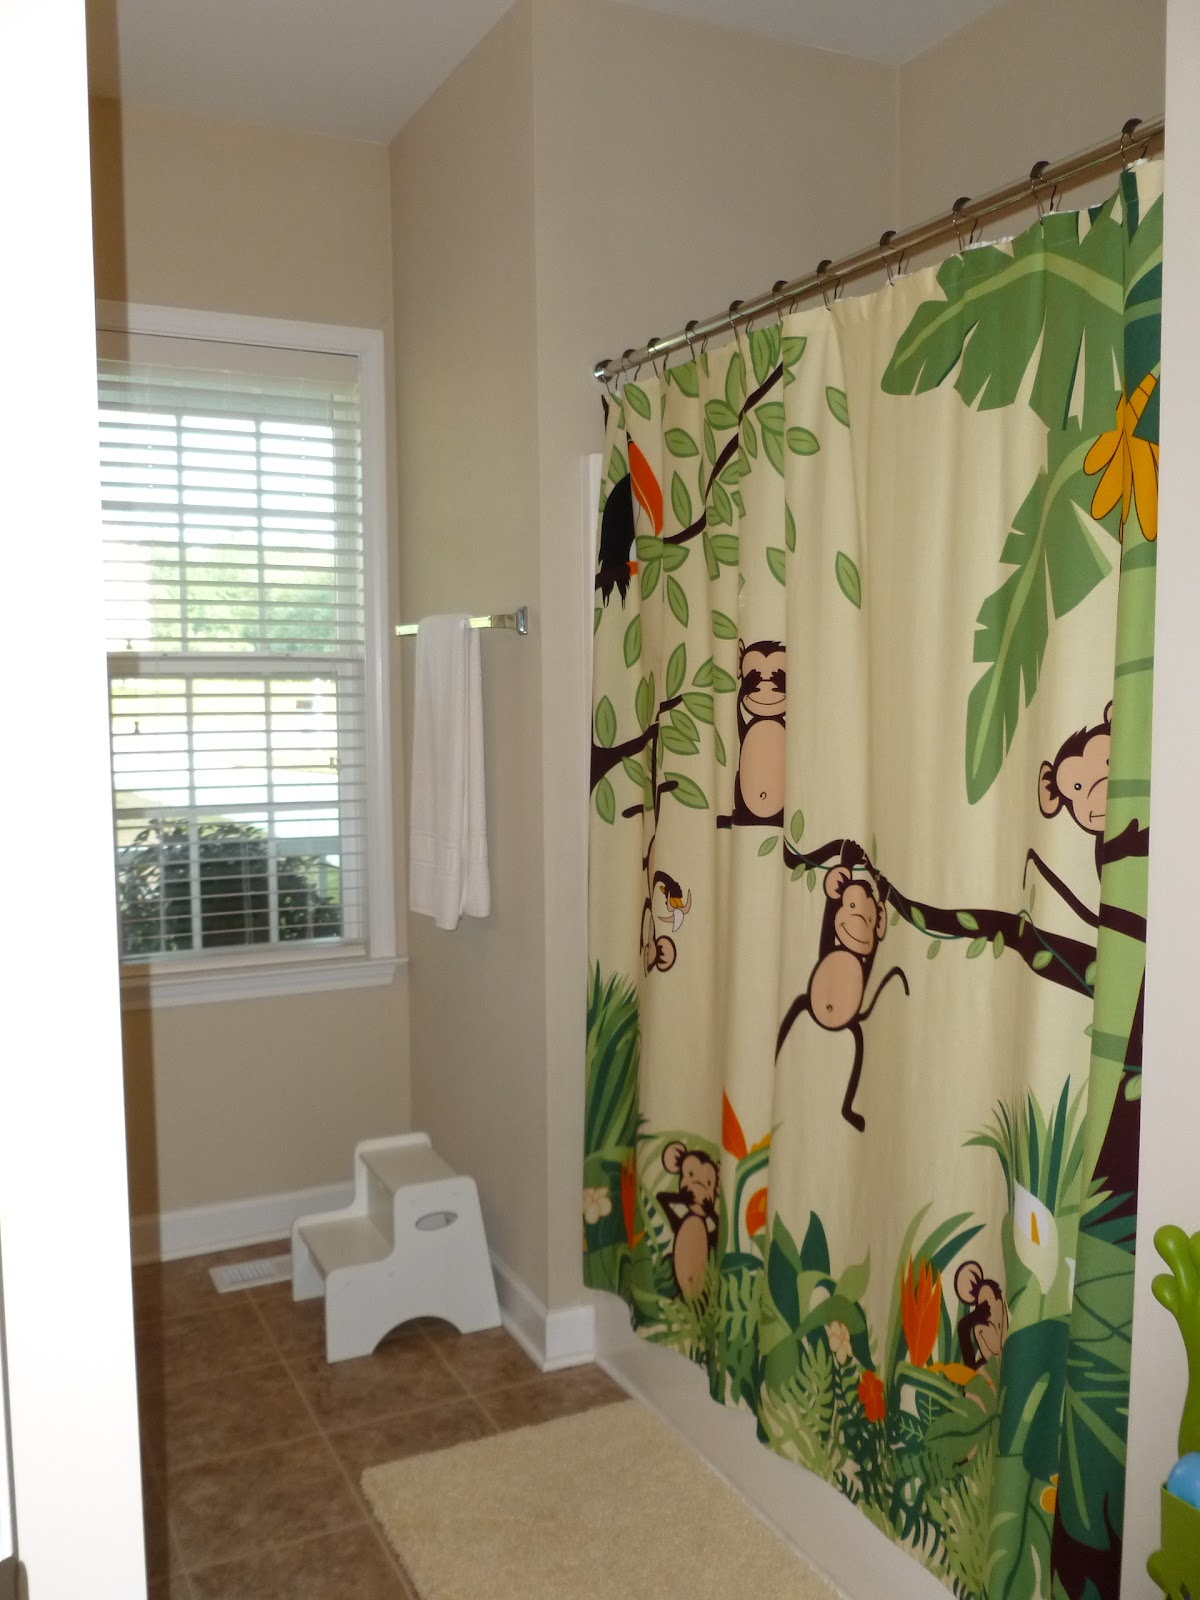 Shower curtains bed bath beyond - Monkey Curtain And Tissue Cover Are From Bed Bath And Beyond